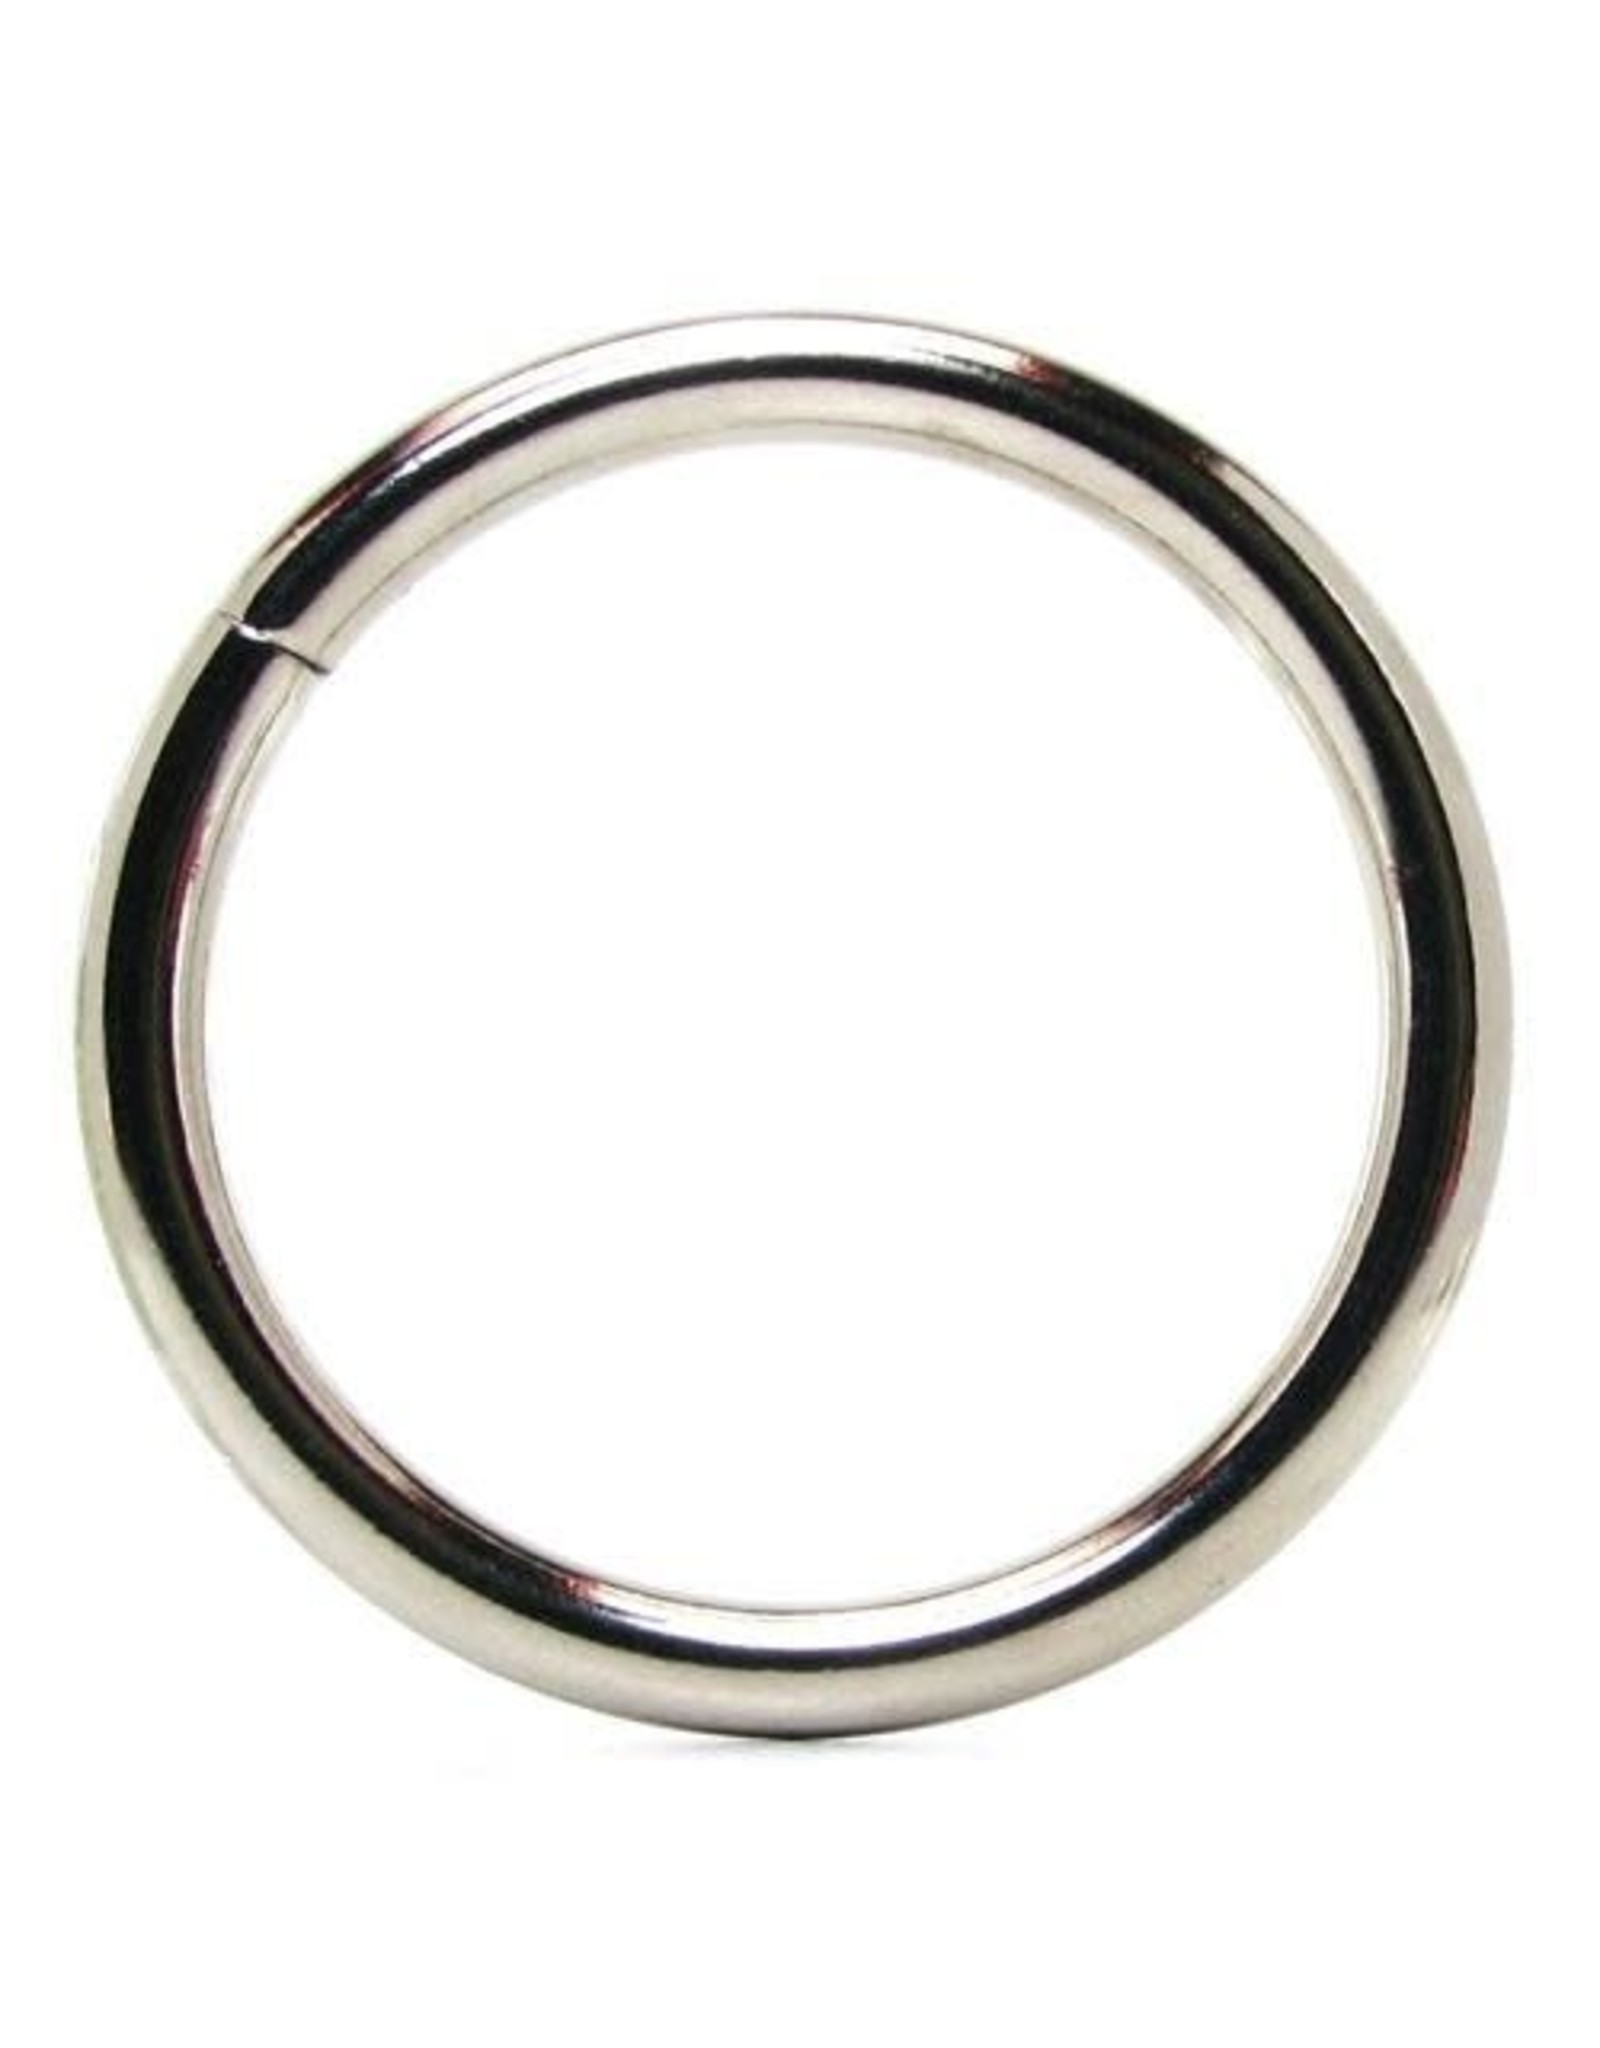 Sir Richards C&B Gear Steel Cock Ring